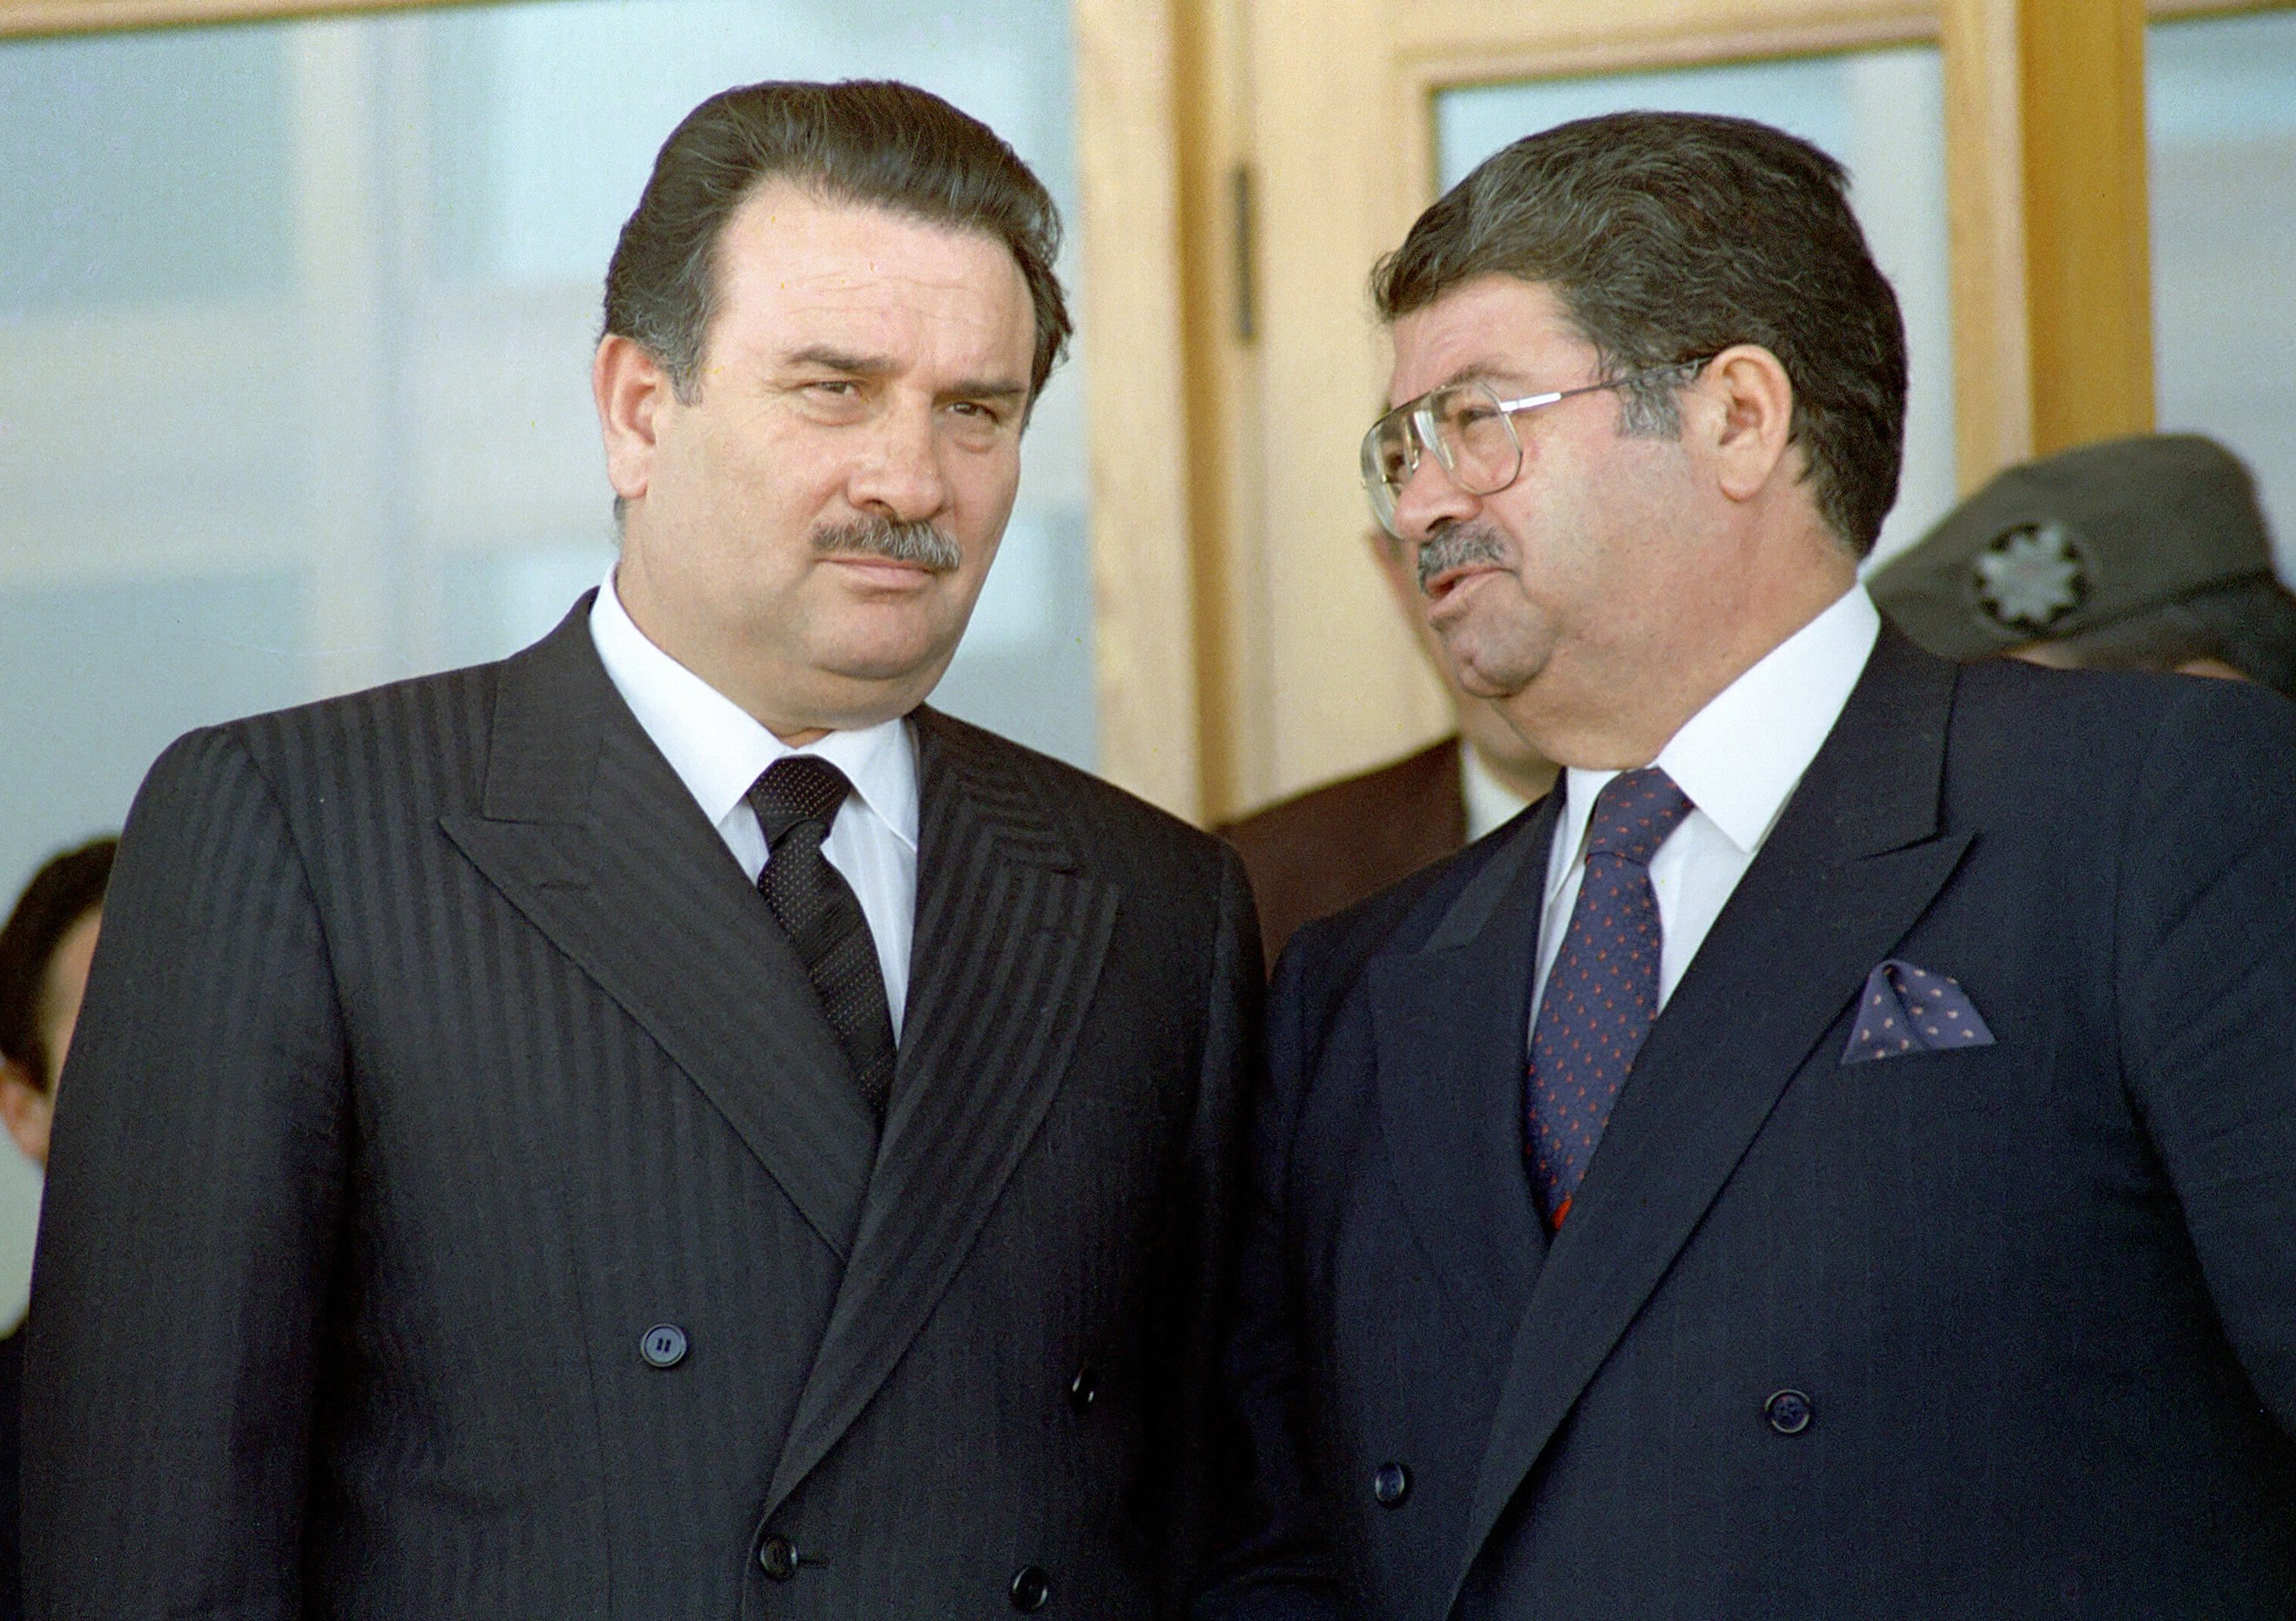 Former President Turgut Özal (R) speaks with then Prime Minister Yıldırım Akbulut during a visit to Izmir, western Turkey, on March 9, 1990, in this file photo provided on April 14, 2021. (AA Photo)